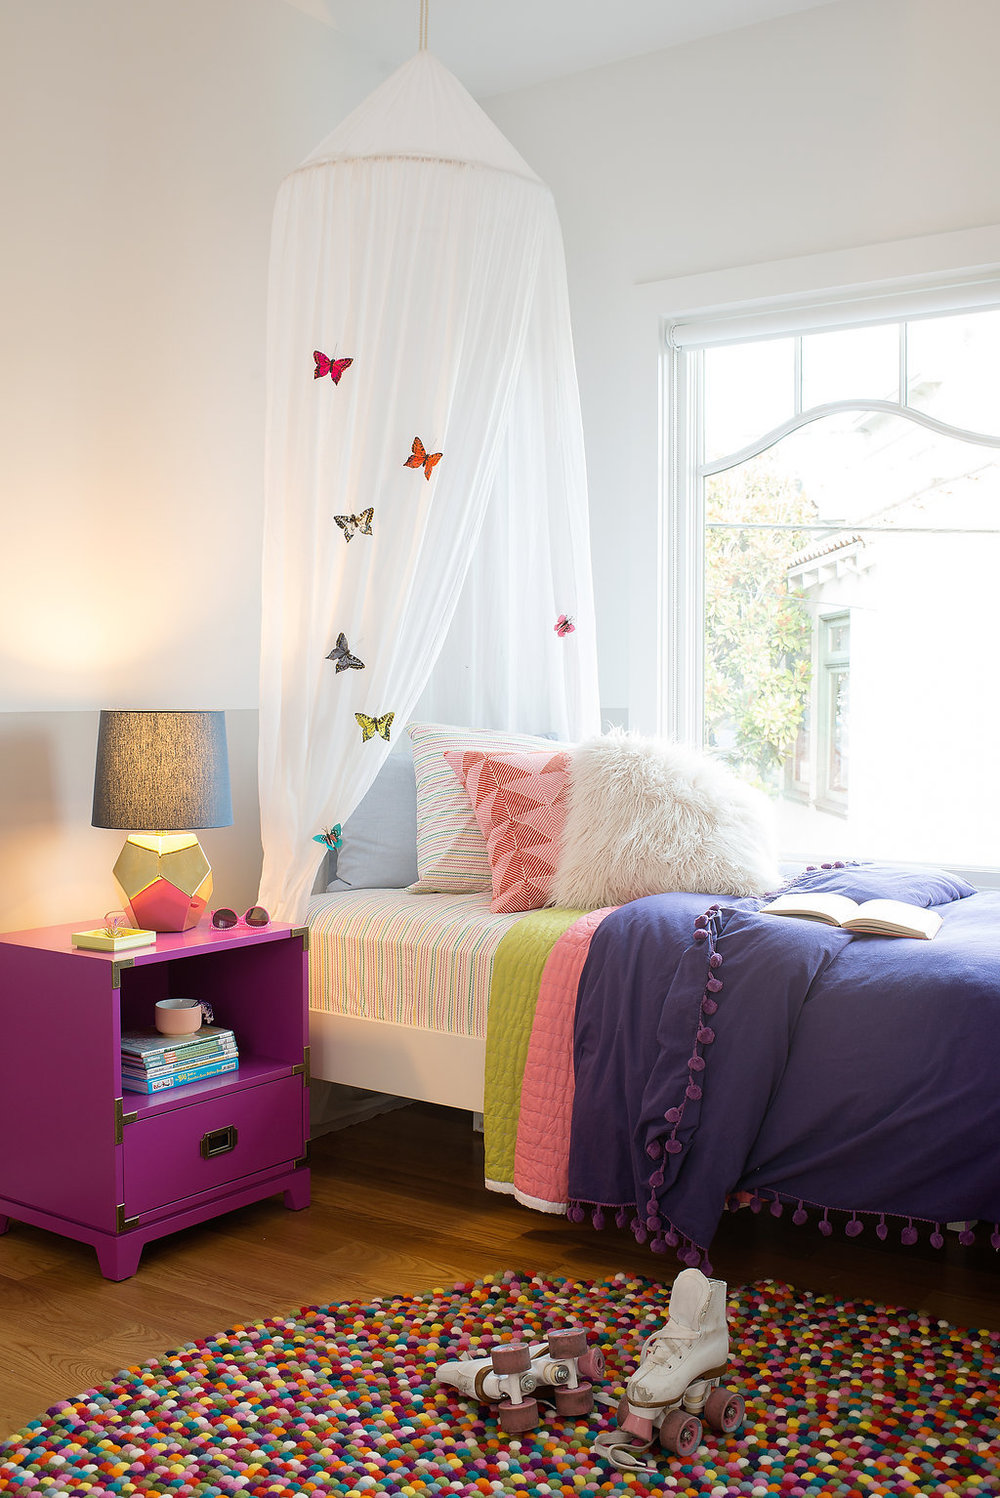 kids bedroom with colorful dotted rug and bed with butterfly canopy and pink nightstand and gold lamp.jpg